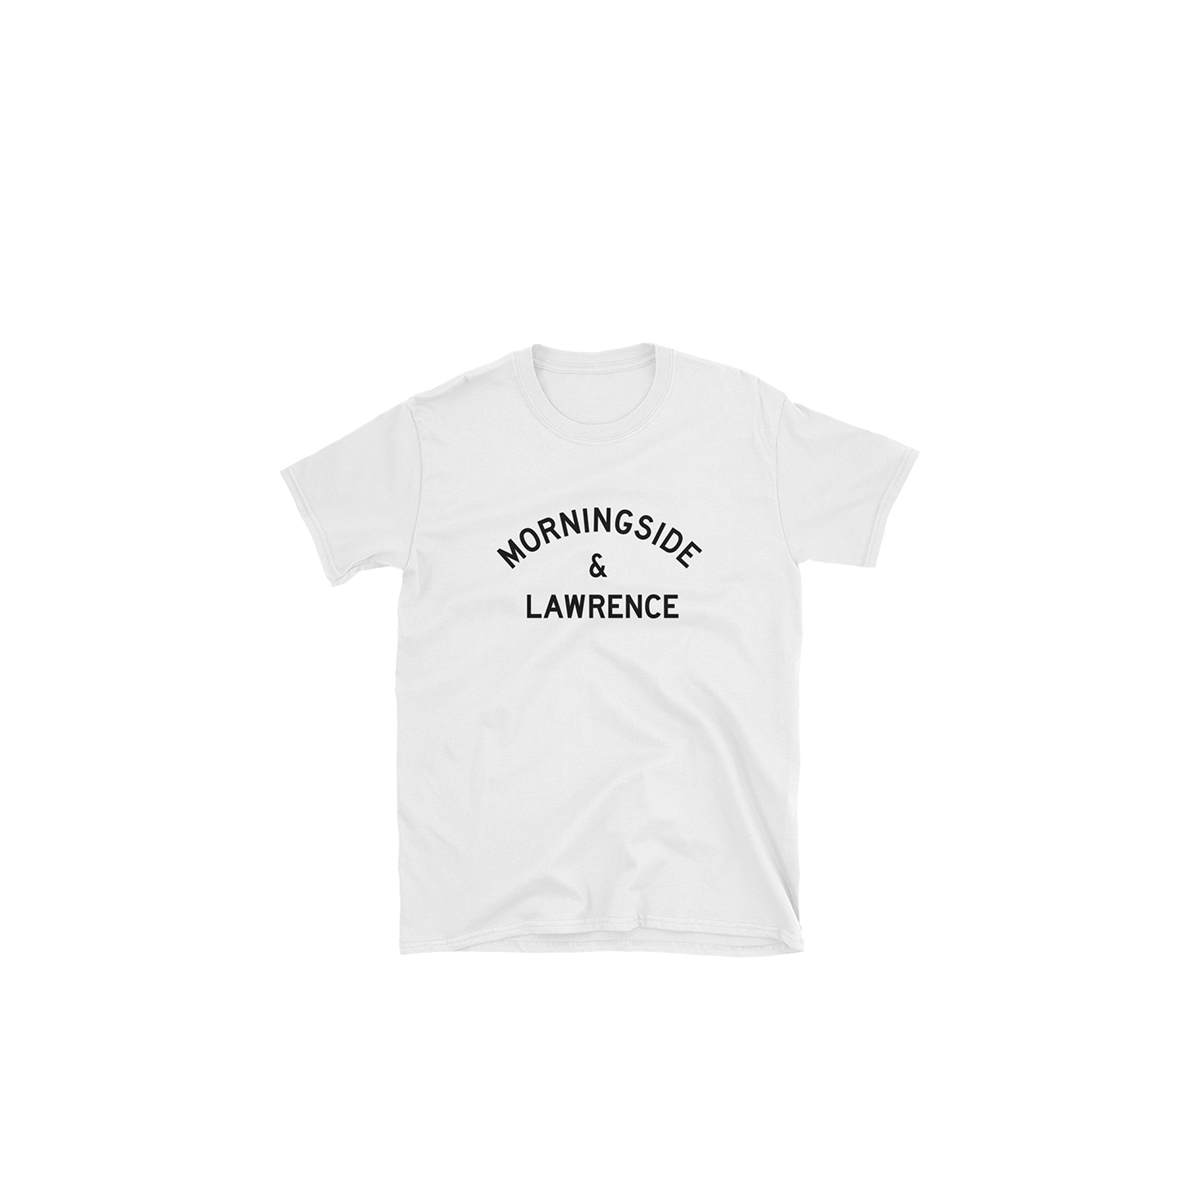 Morningside & Lawrence T-Shirt